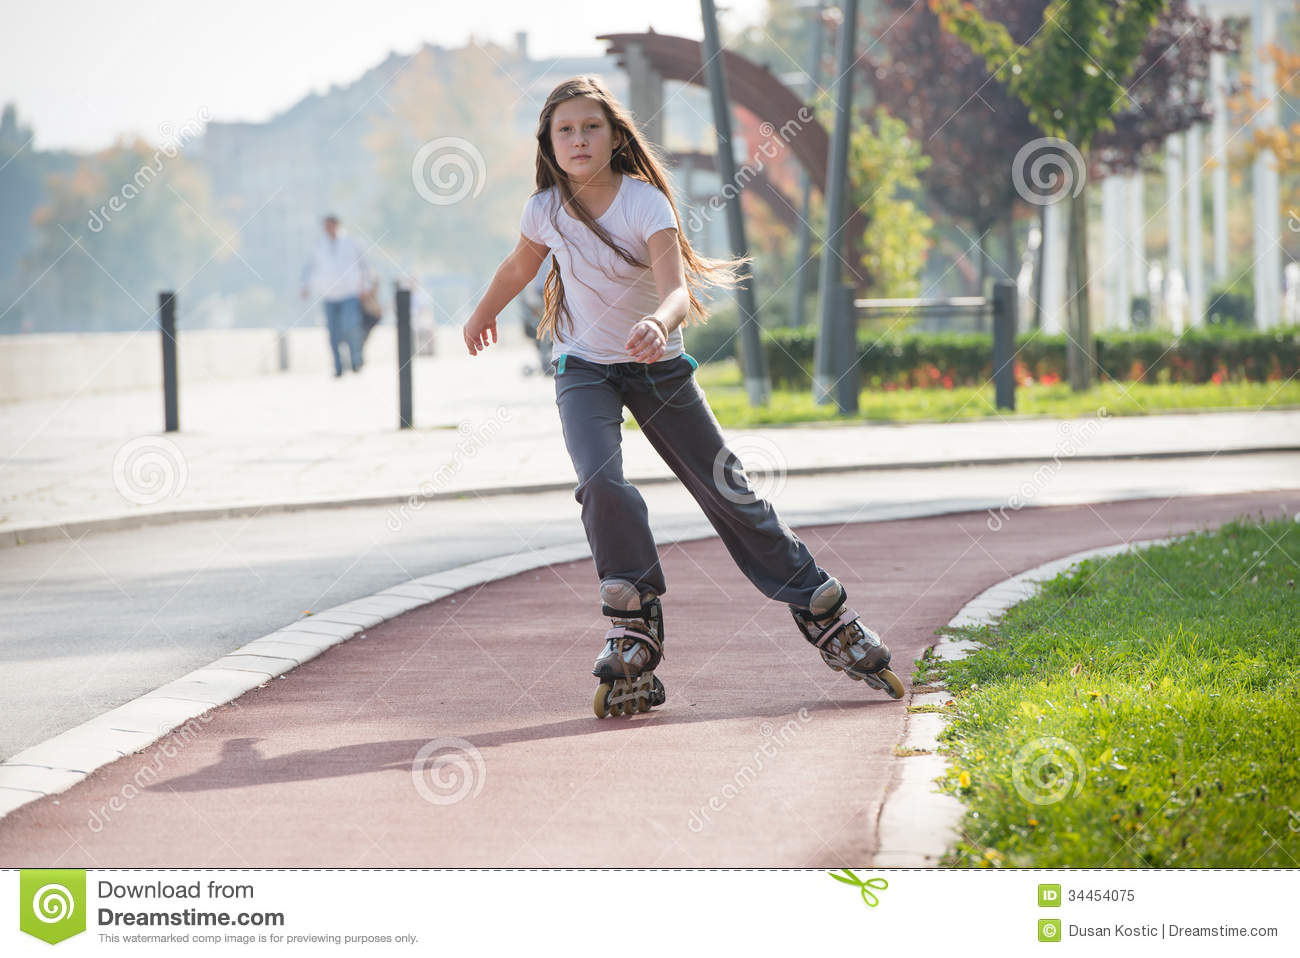 girl on the rollerblades stock image image of pretty